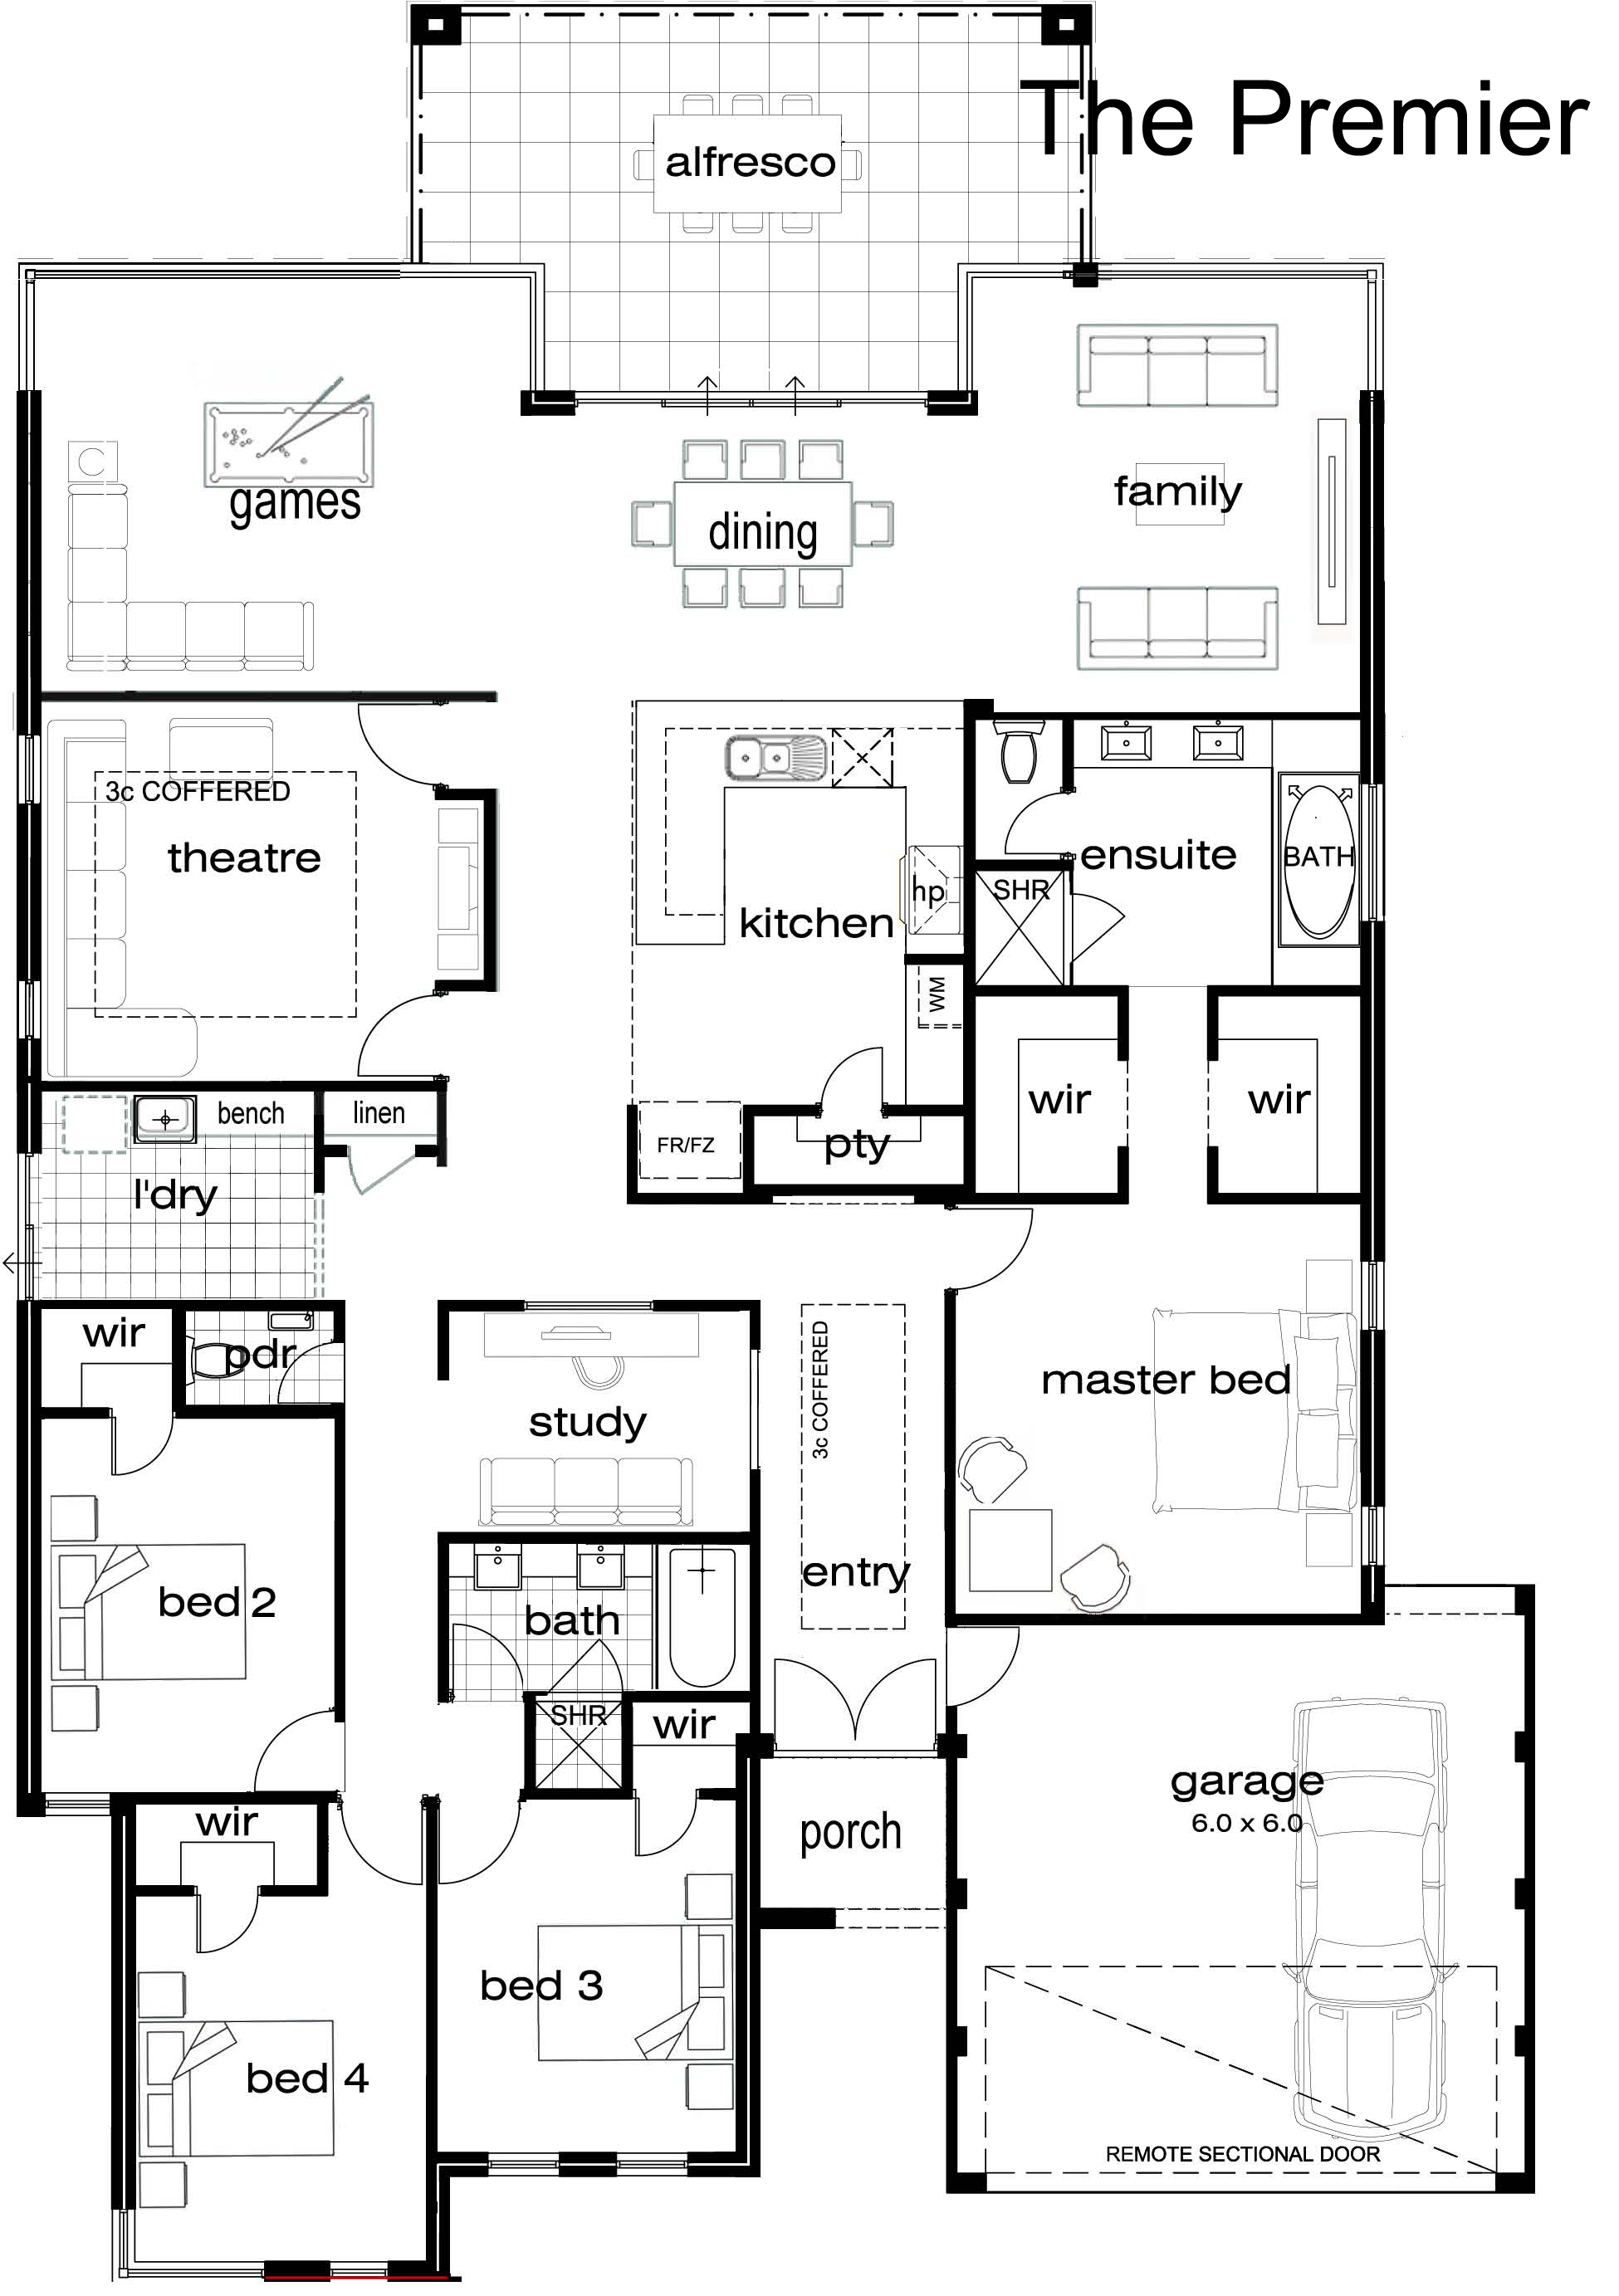 Single storey house plan google search houseplans - Single story four bedroom house plans ...